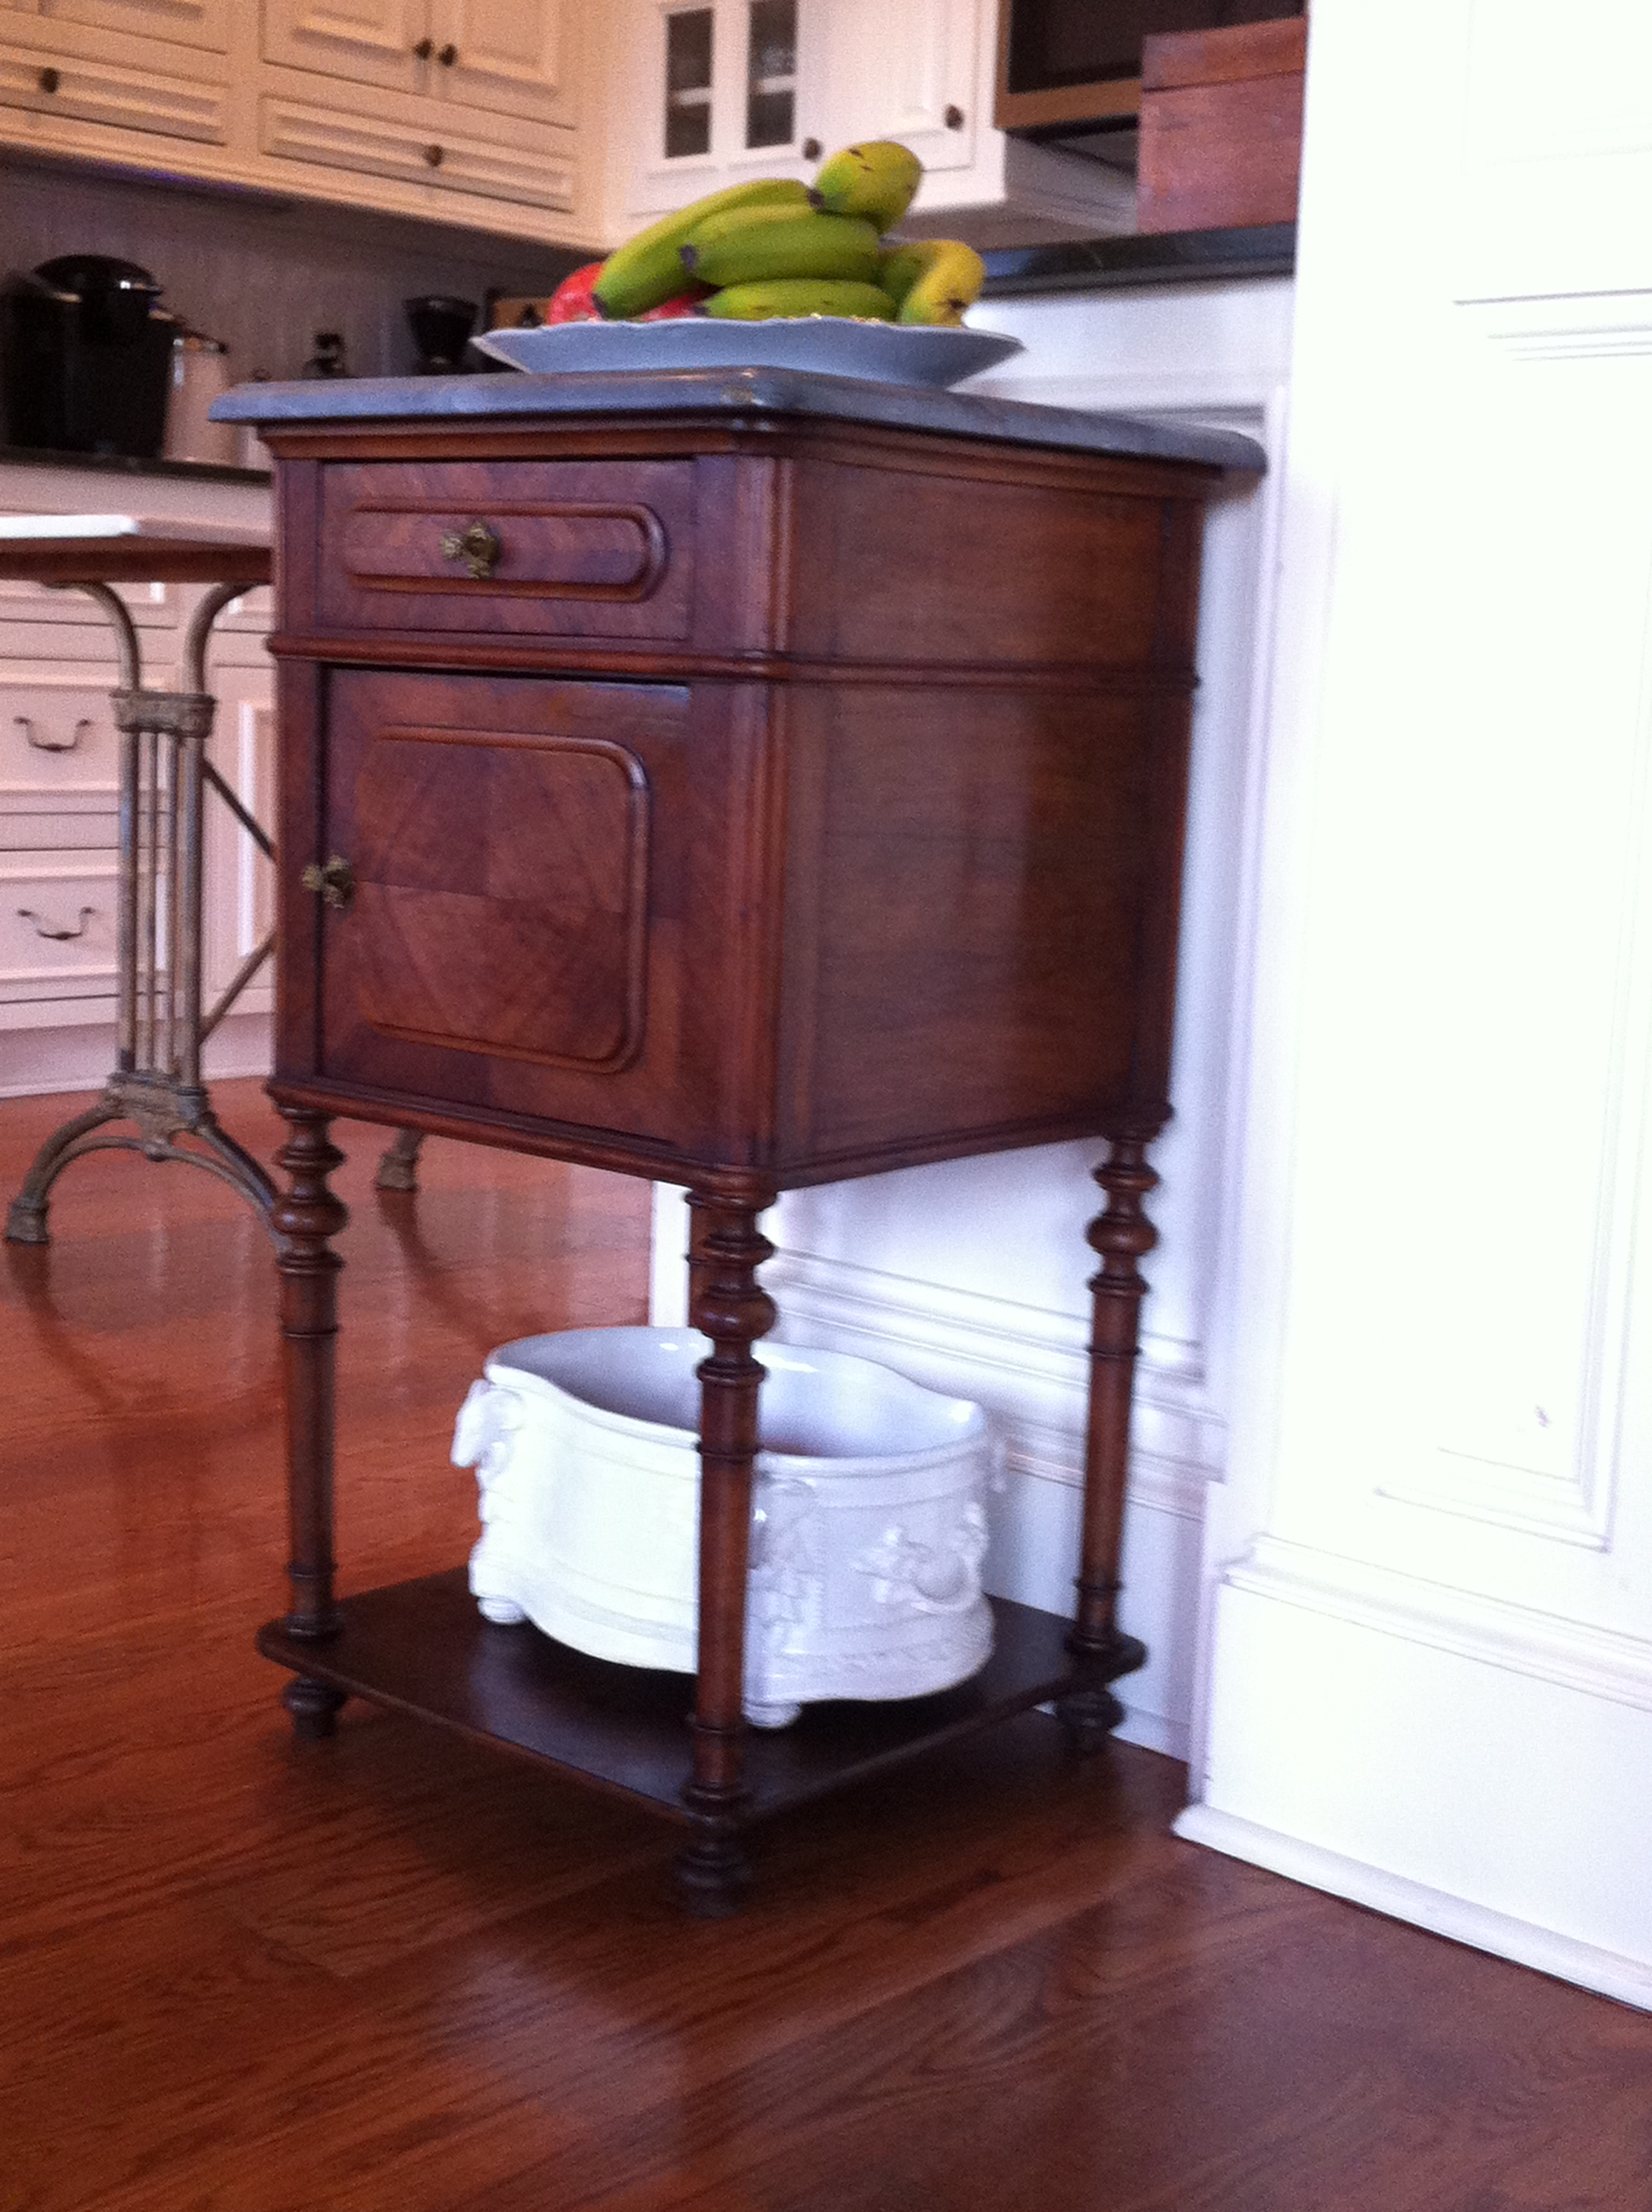 Creative antique decor: antique French nightstand in the kitchen